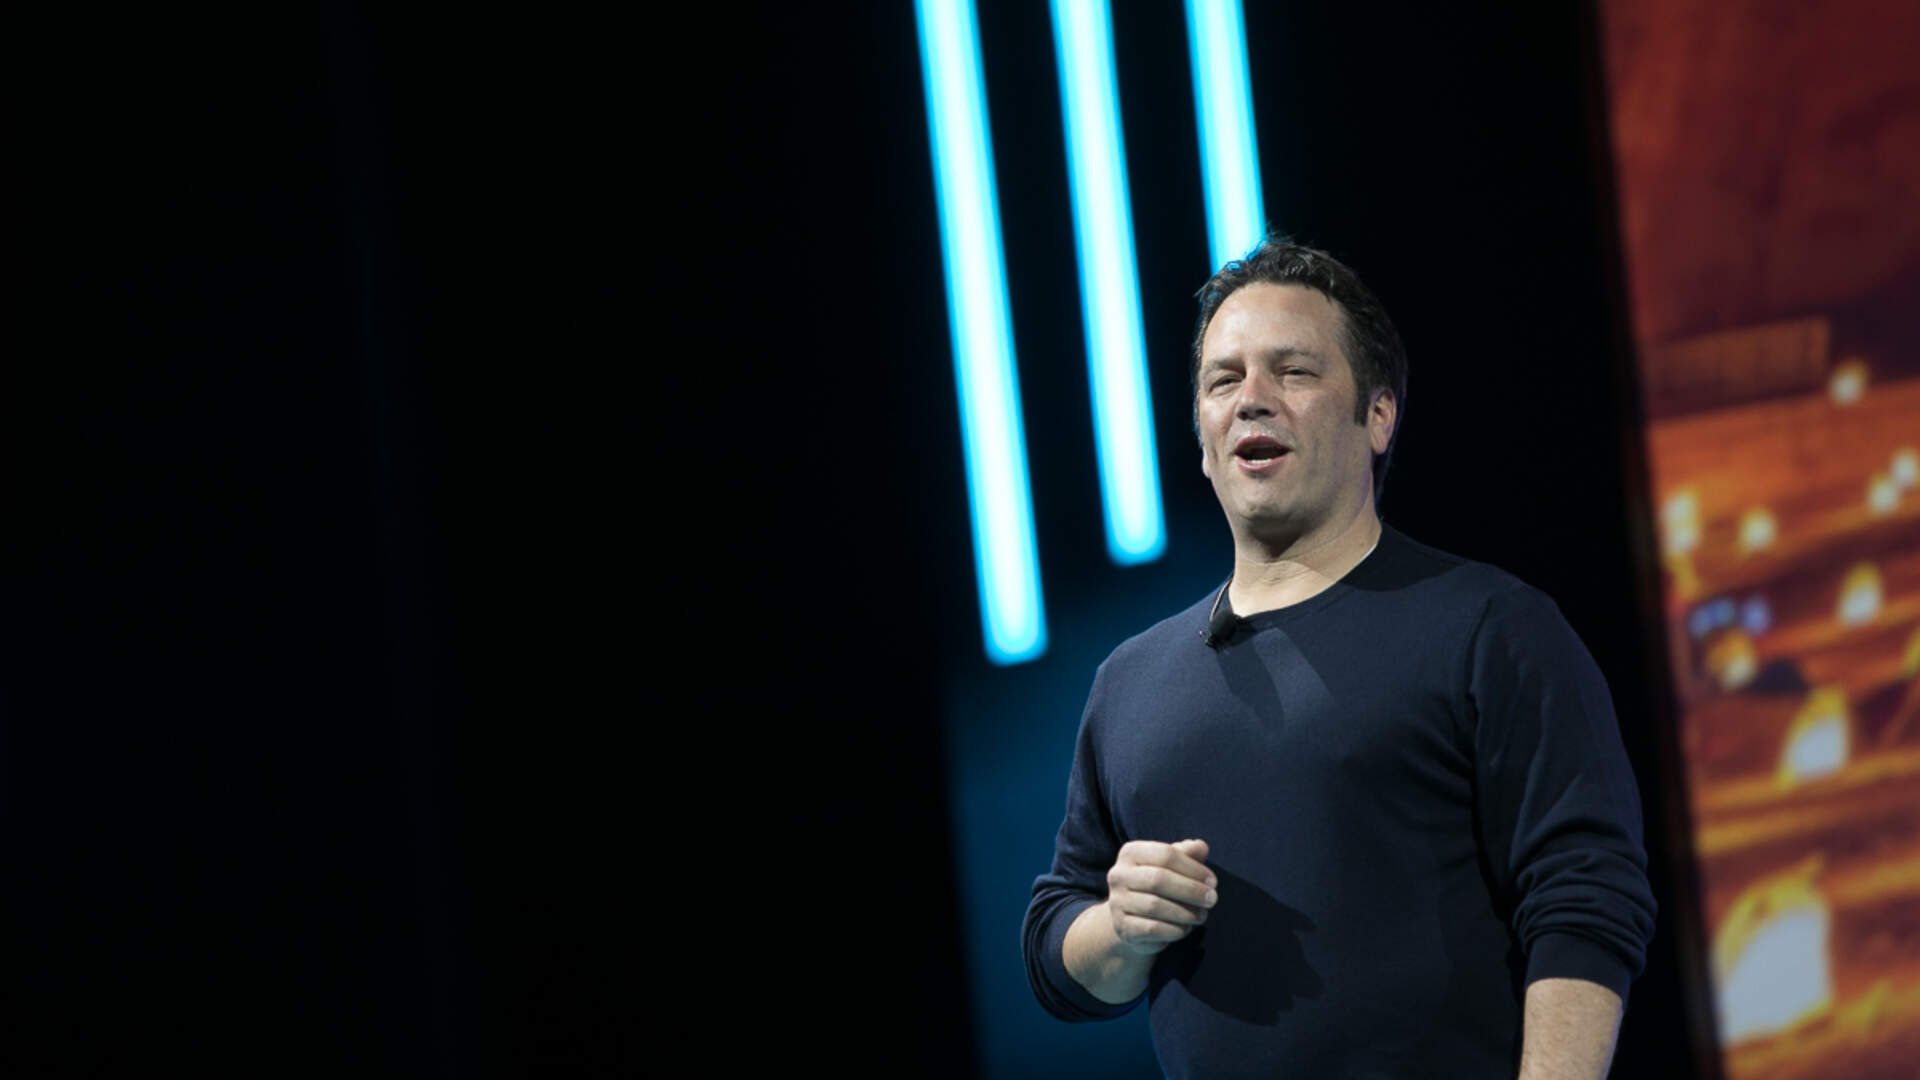 Xbox's Phil Spencer Says Amazon and Google Are Its Main Competitors, Not Sony or Nintendo